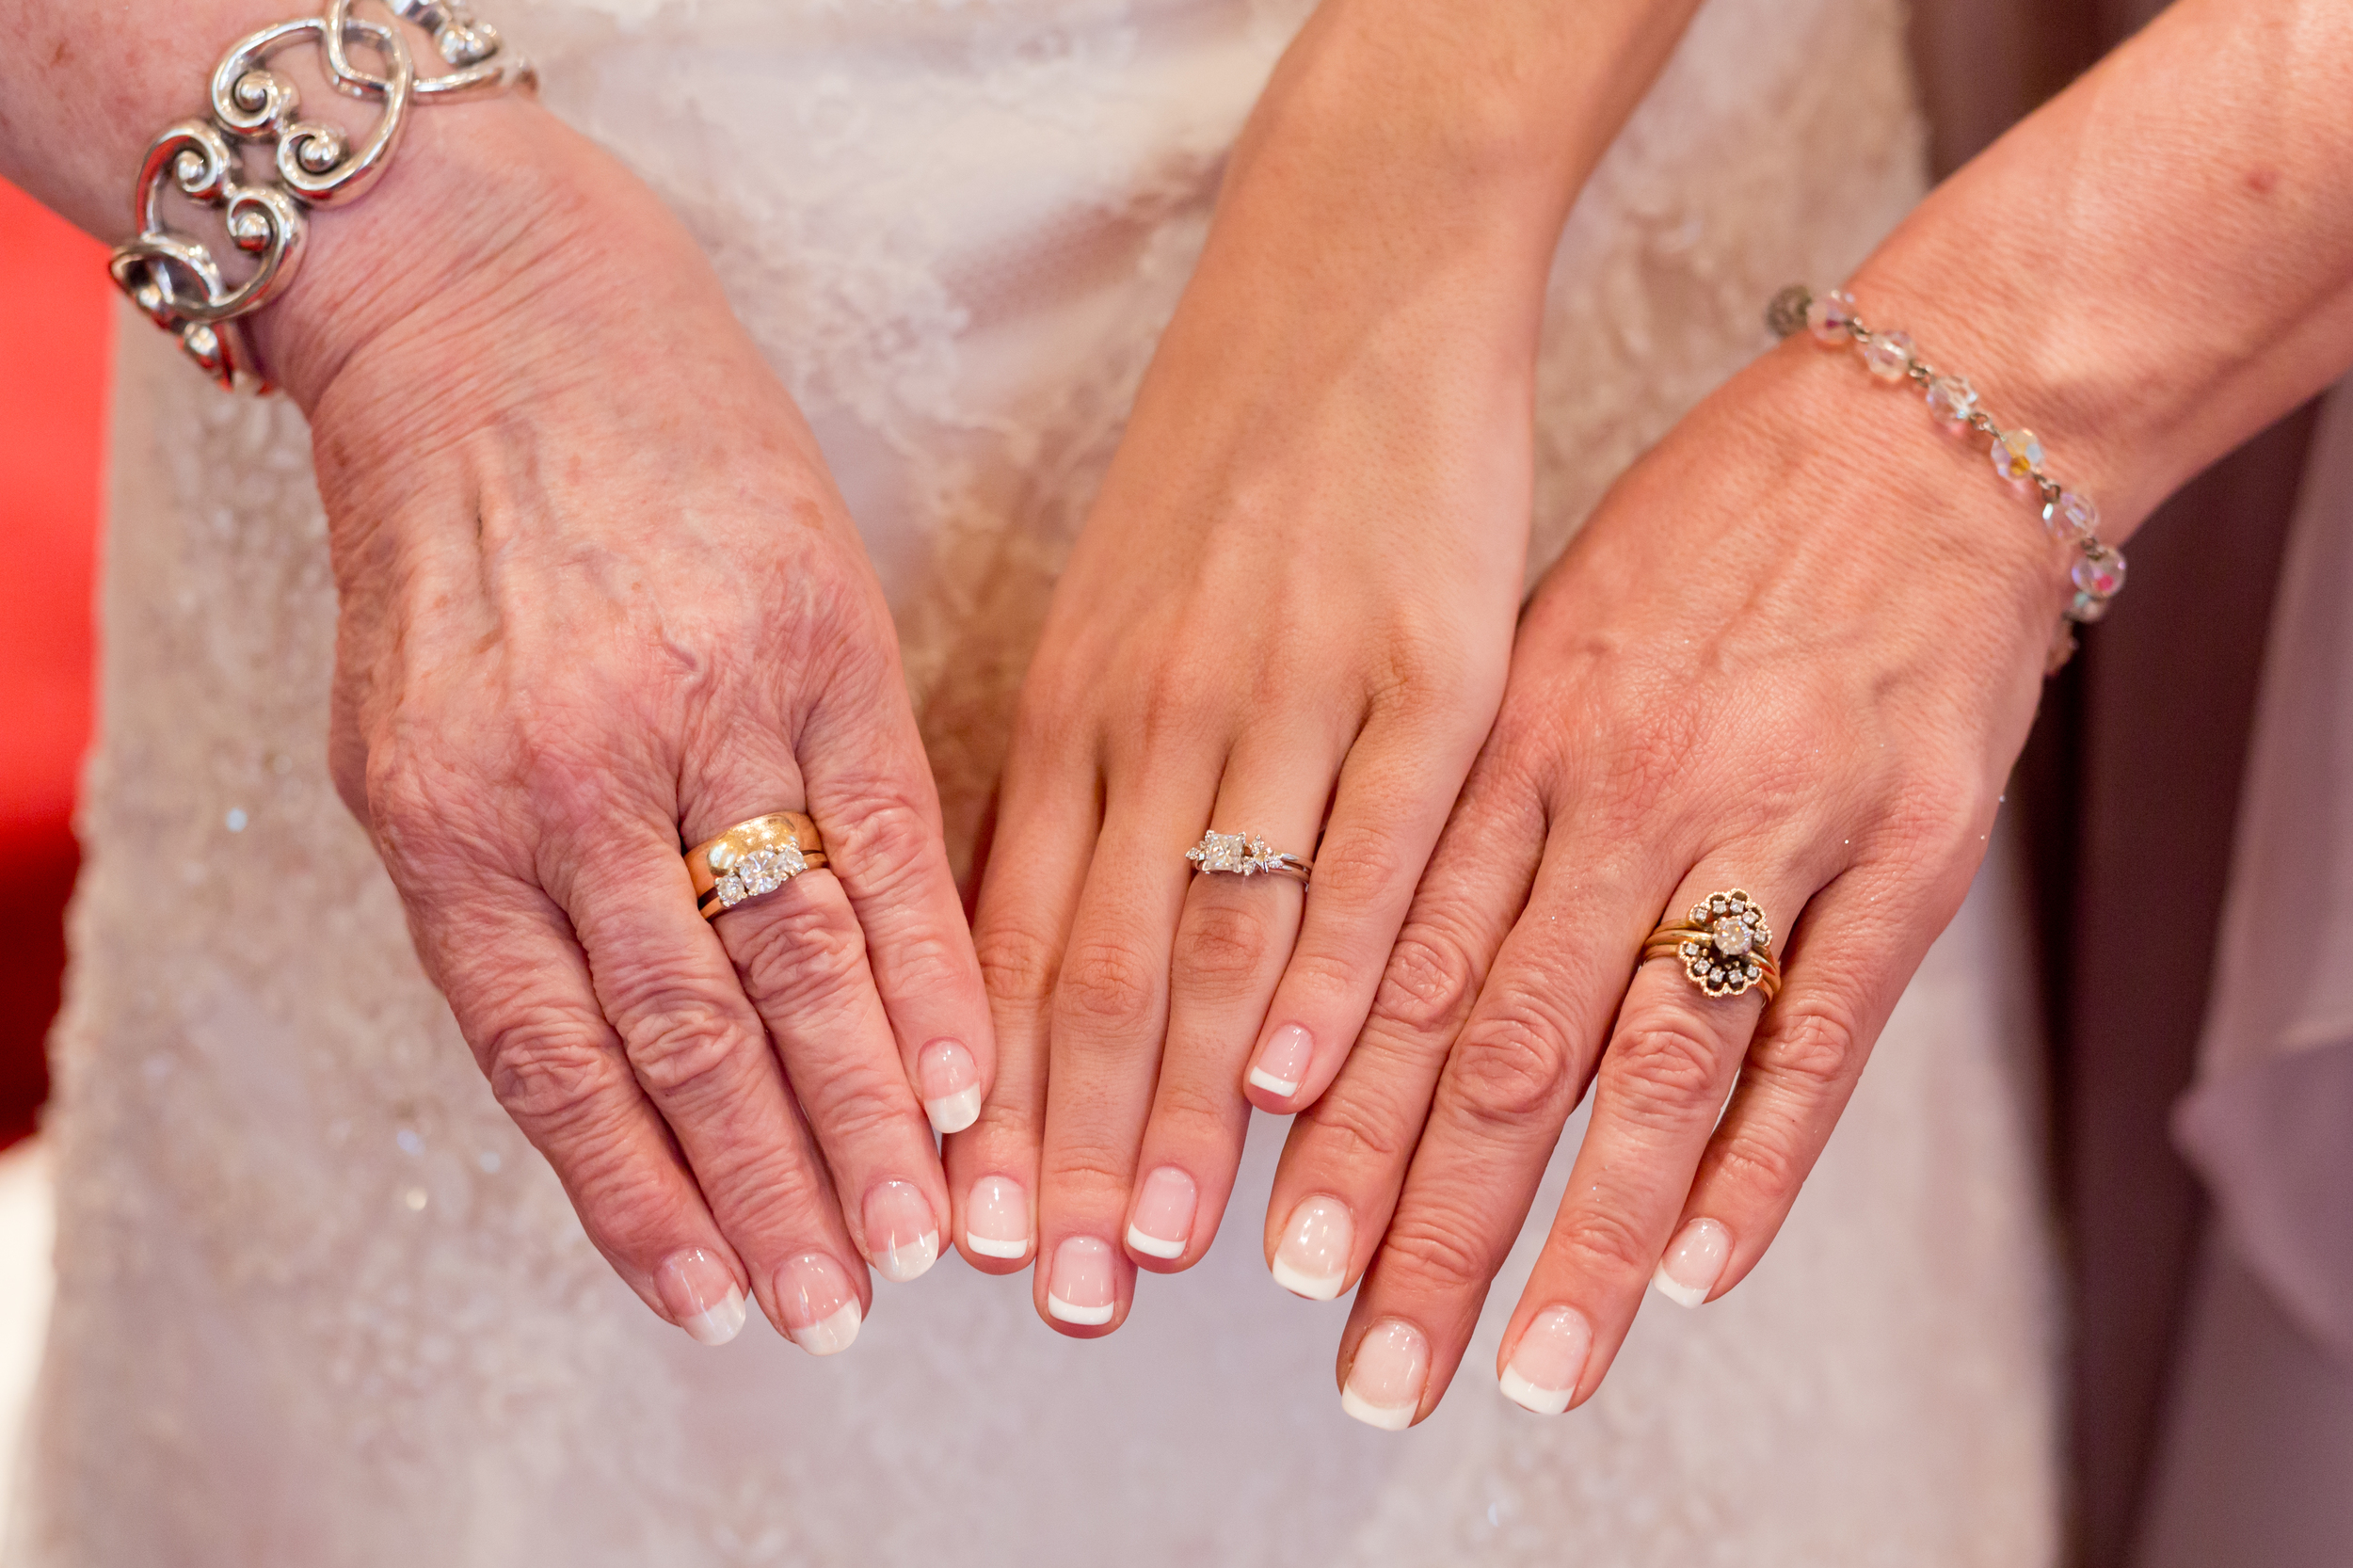 three generations of married women (wedding rings on hands)